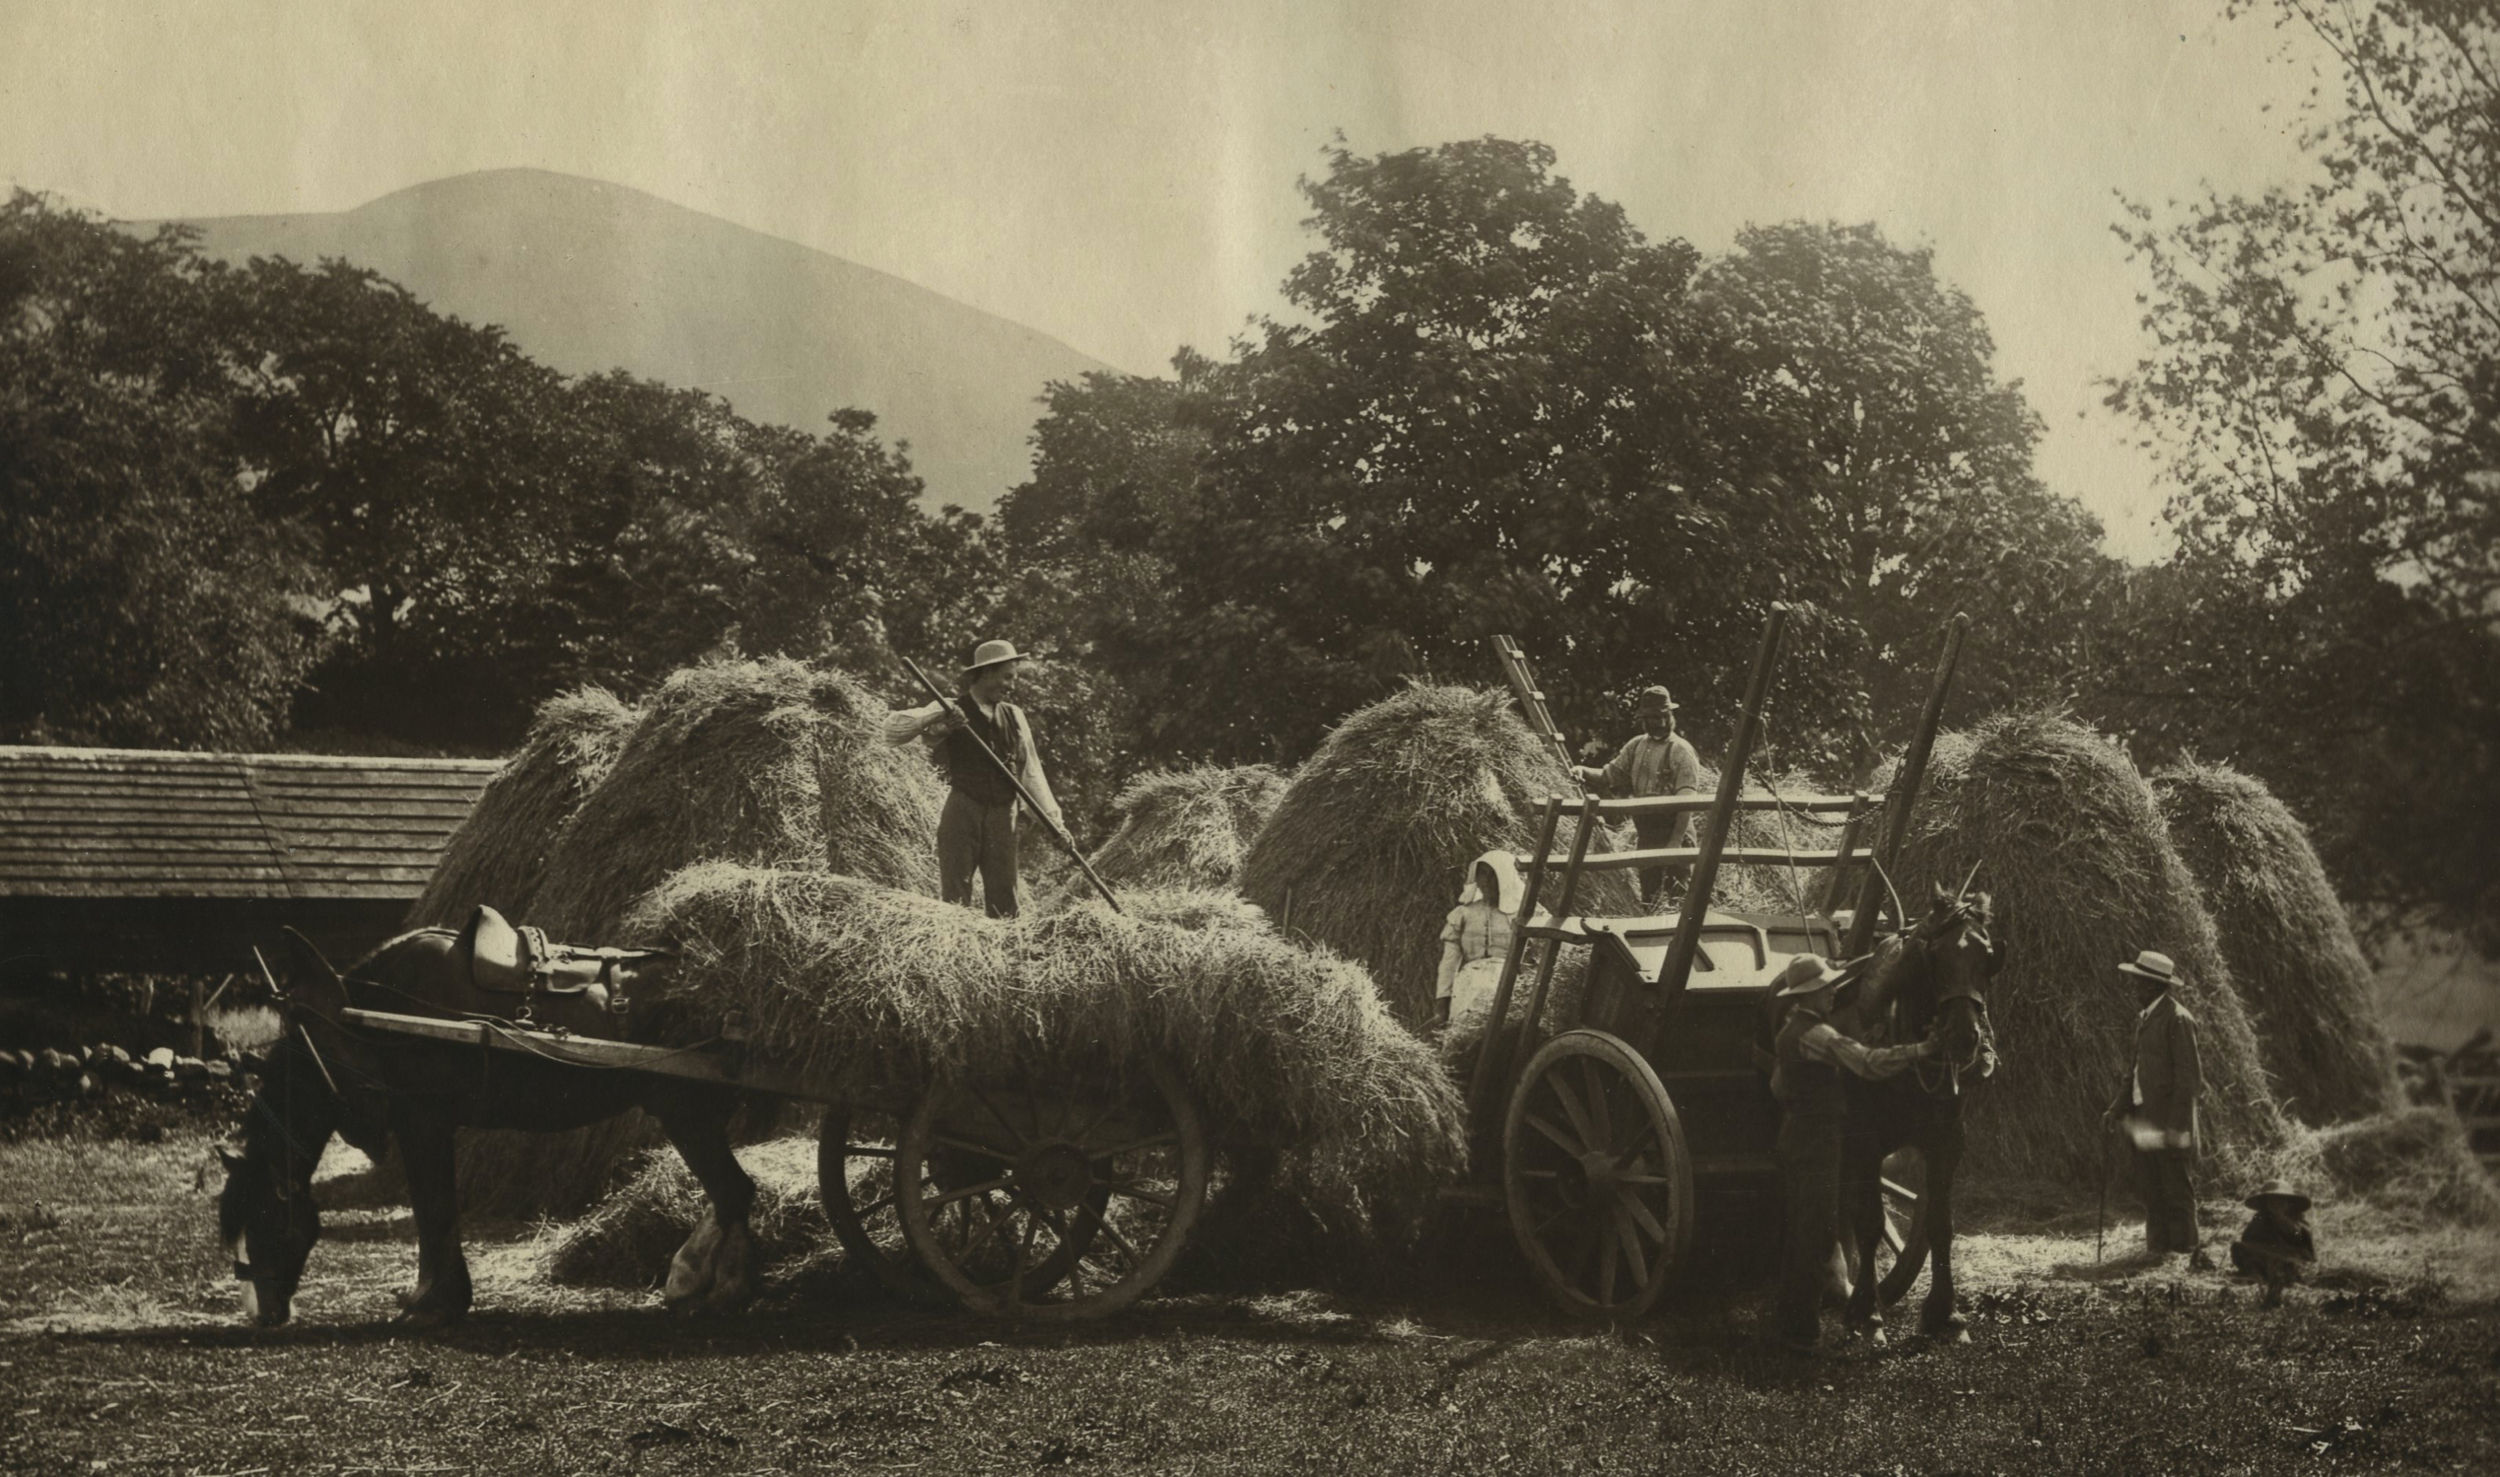 Scottish Harvest By Charles Reid c1900 - Carbon Print 280x238mm